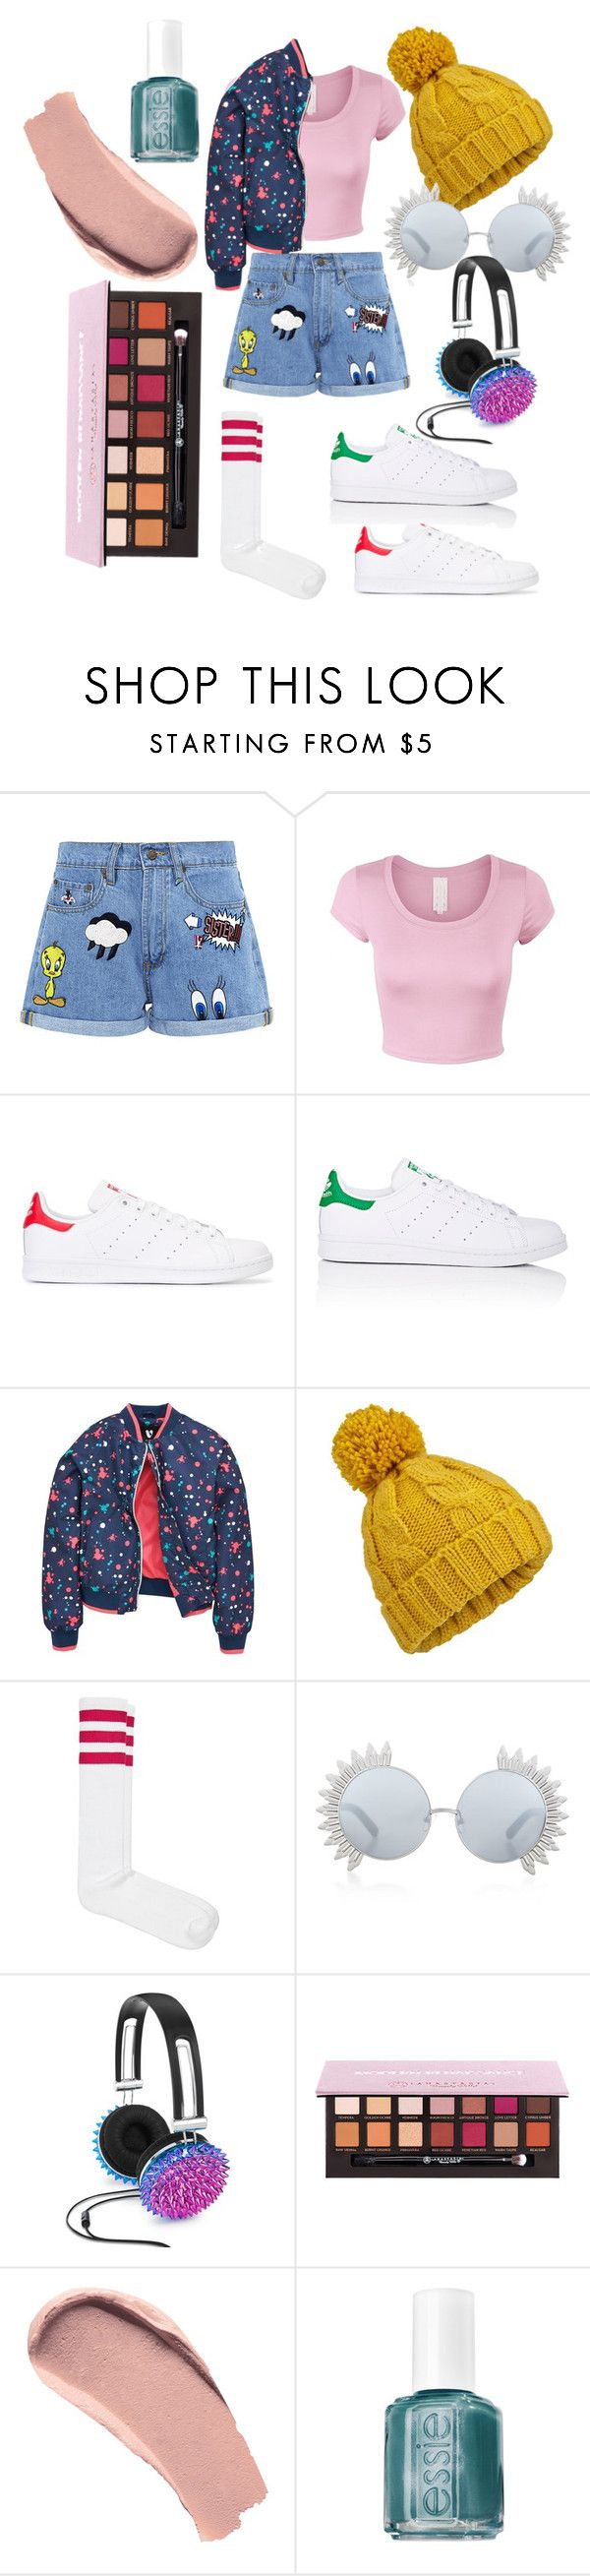 """#10"" by matilda-key on Polyvore featuring Paul & Joe Sister, adidas Originals, adidas, Miss Selfridge, American Apparel, Linda Farrow, Celebrate Shop, Burberry and Essie"